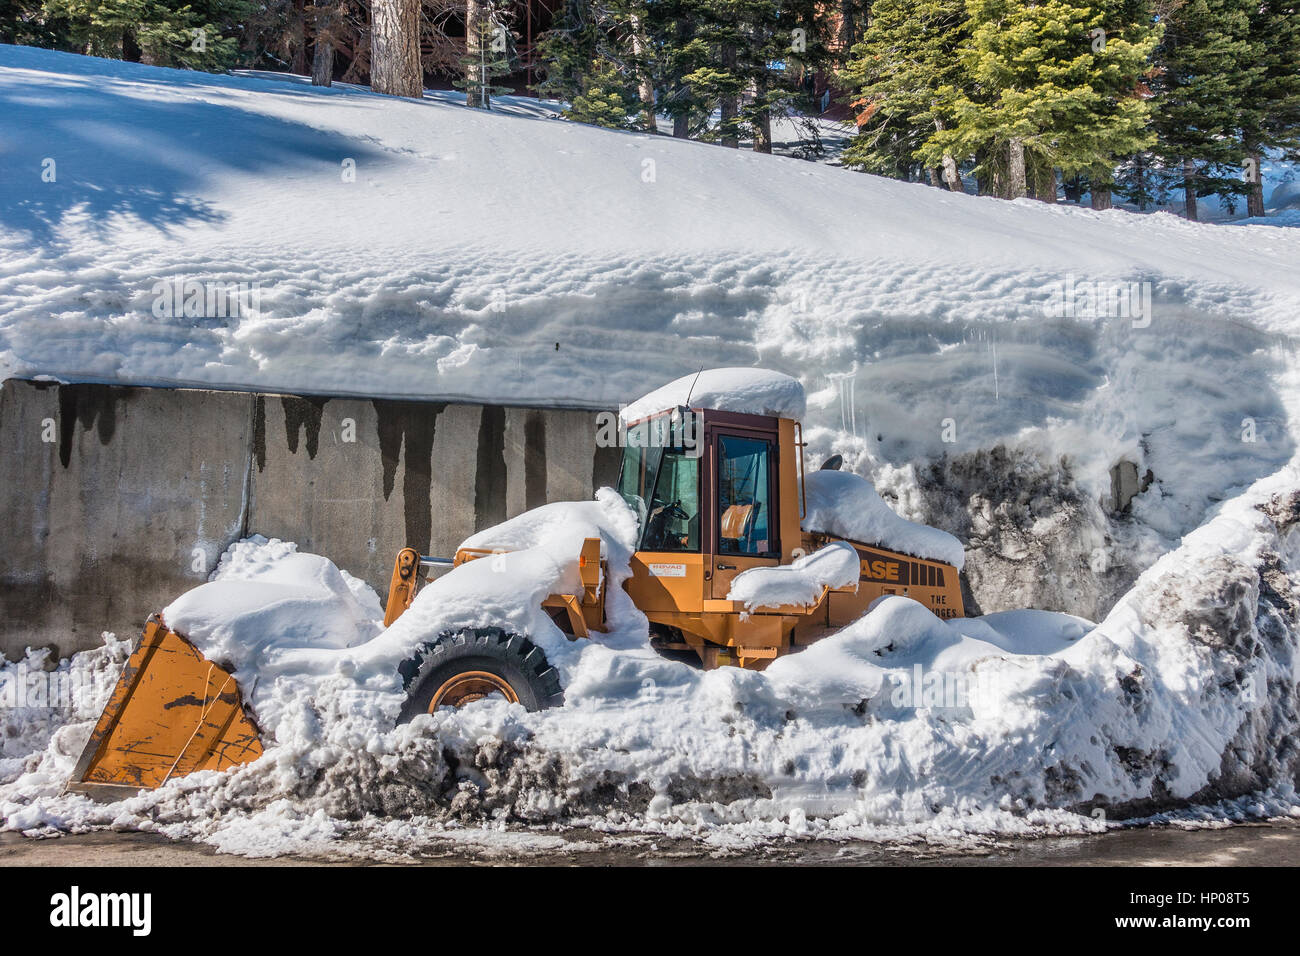 A large yellow snow removal front-loader tractor is covered with snow and has snow pushed in around it which effectively - Stock Image